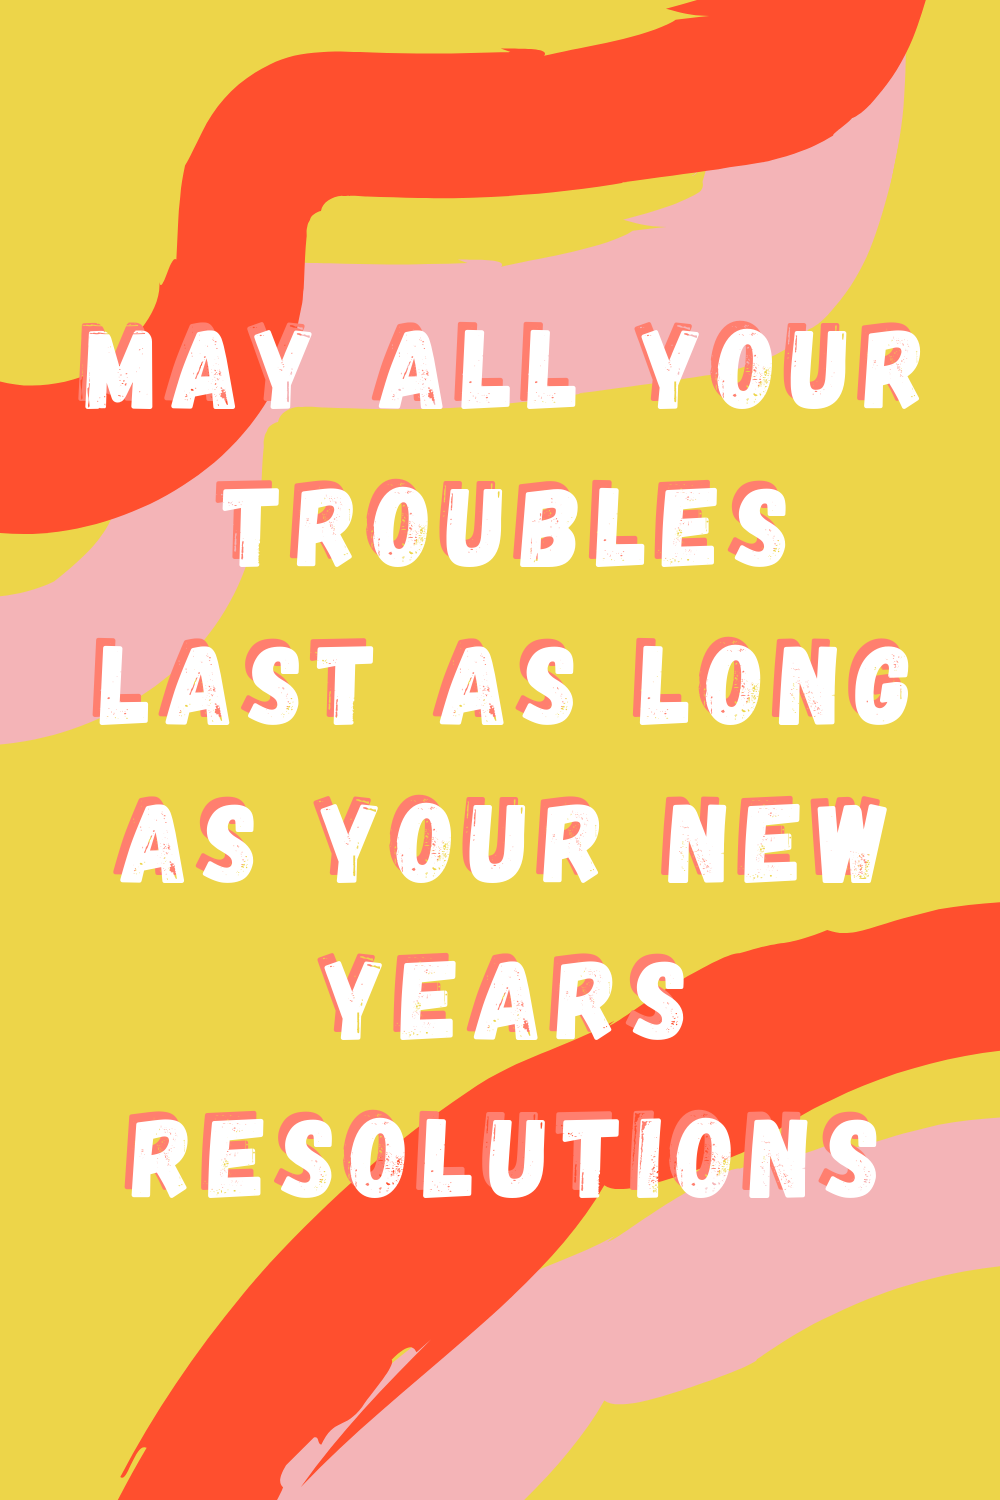 Sarcastic New Years Quotes For 2021